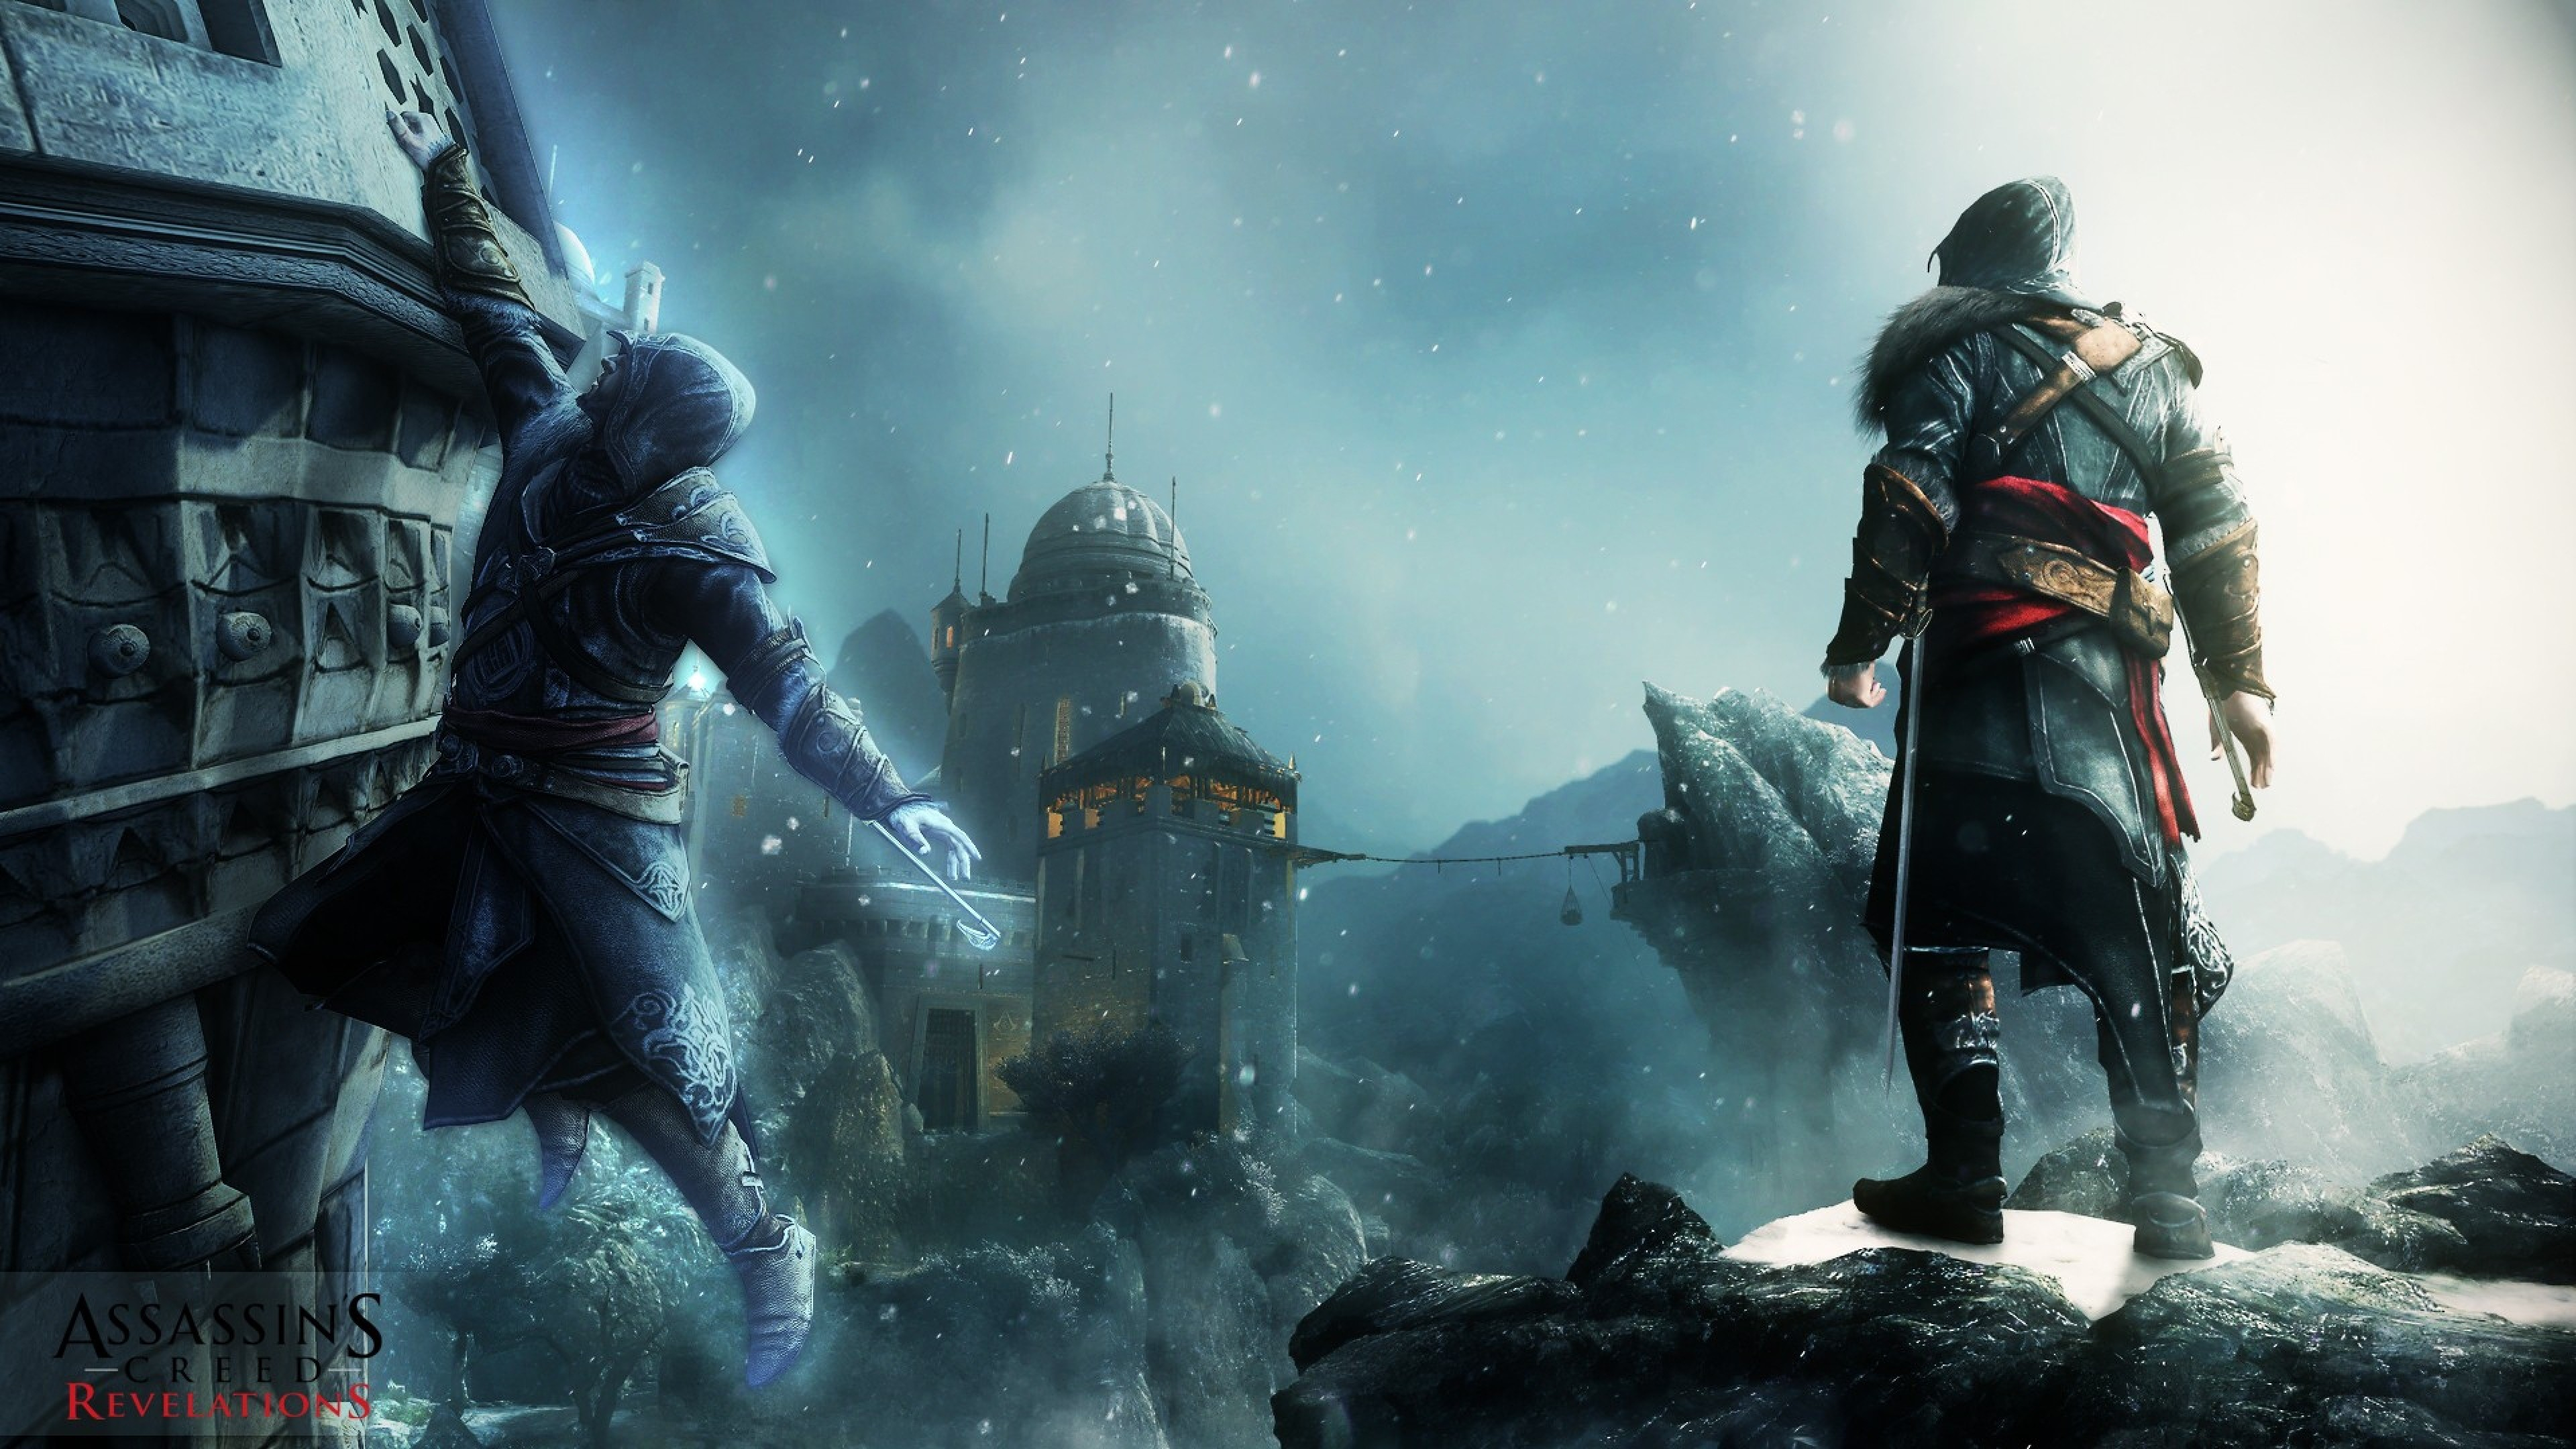 Preview wallpaper assassins creed revelations, desmond miles, castle, wall,  snow, mountains